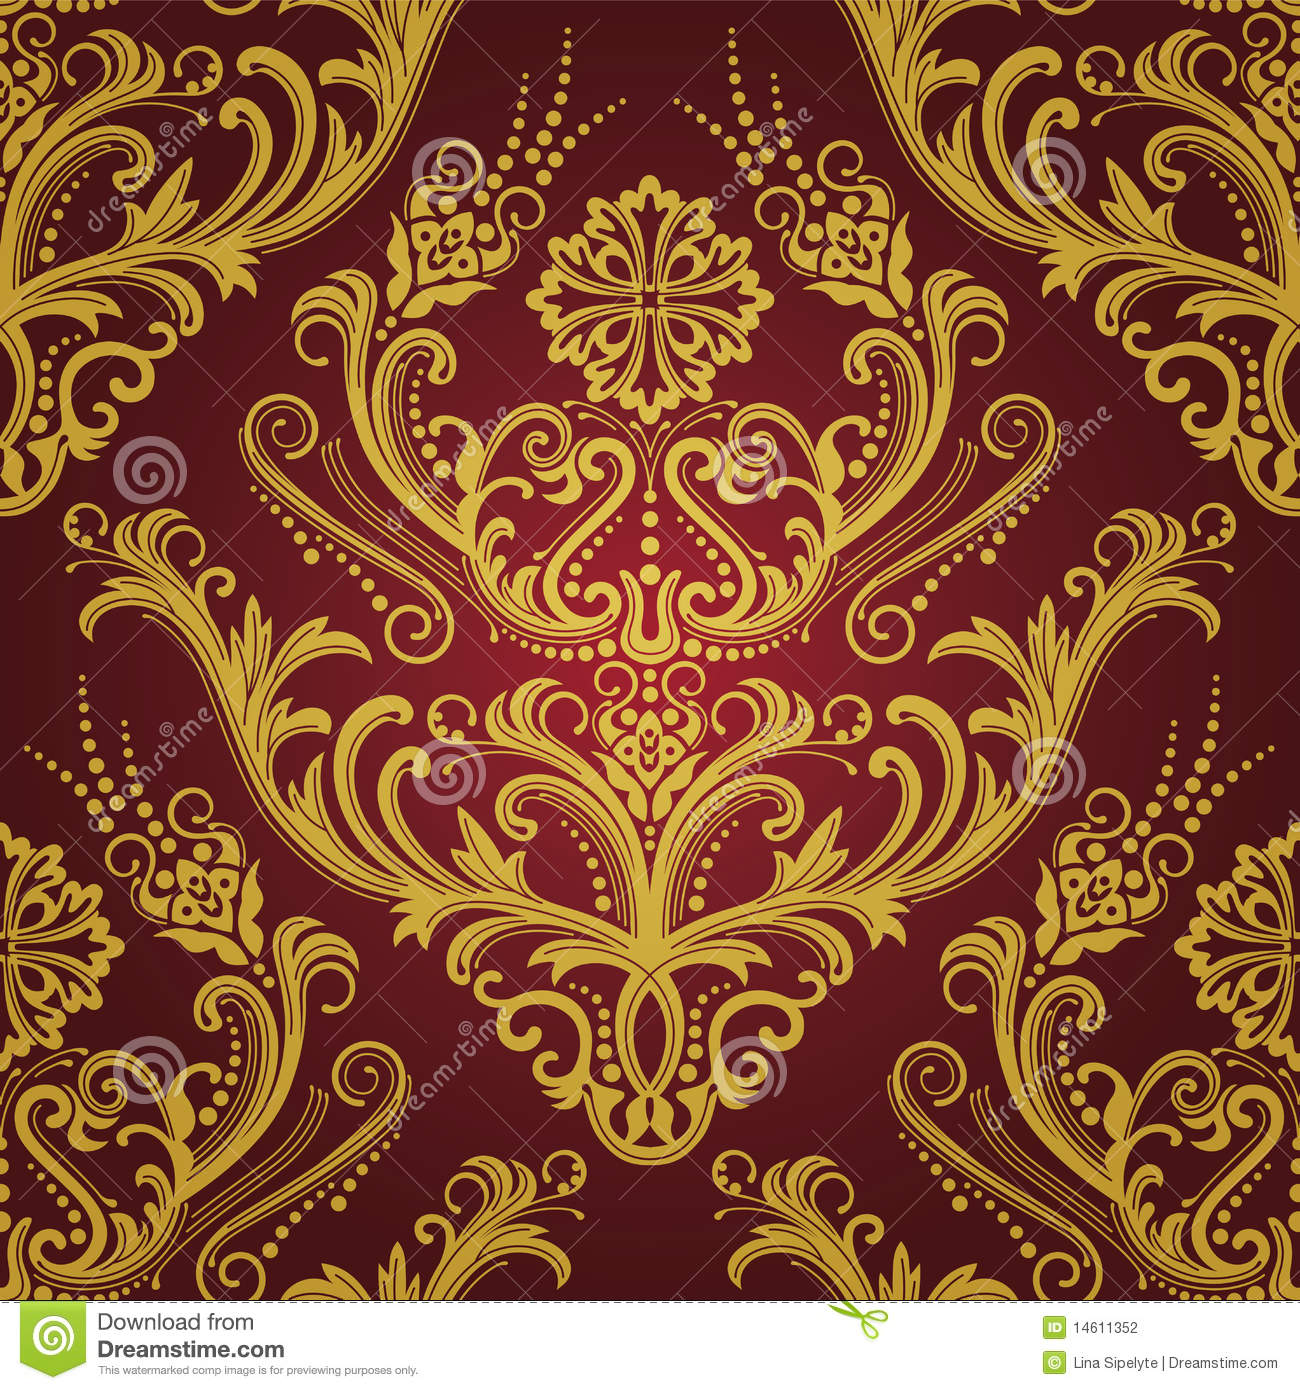 gold and red wallpaper wallpapersafari. Black Bedroom Furniture Sets. Home Design Ideas